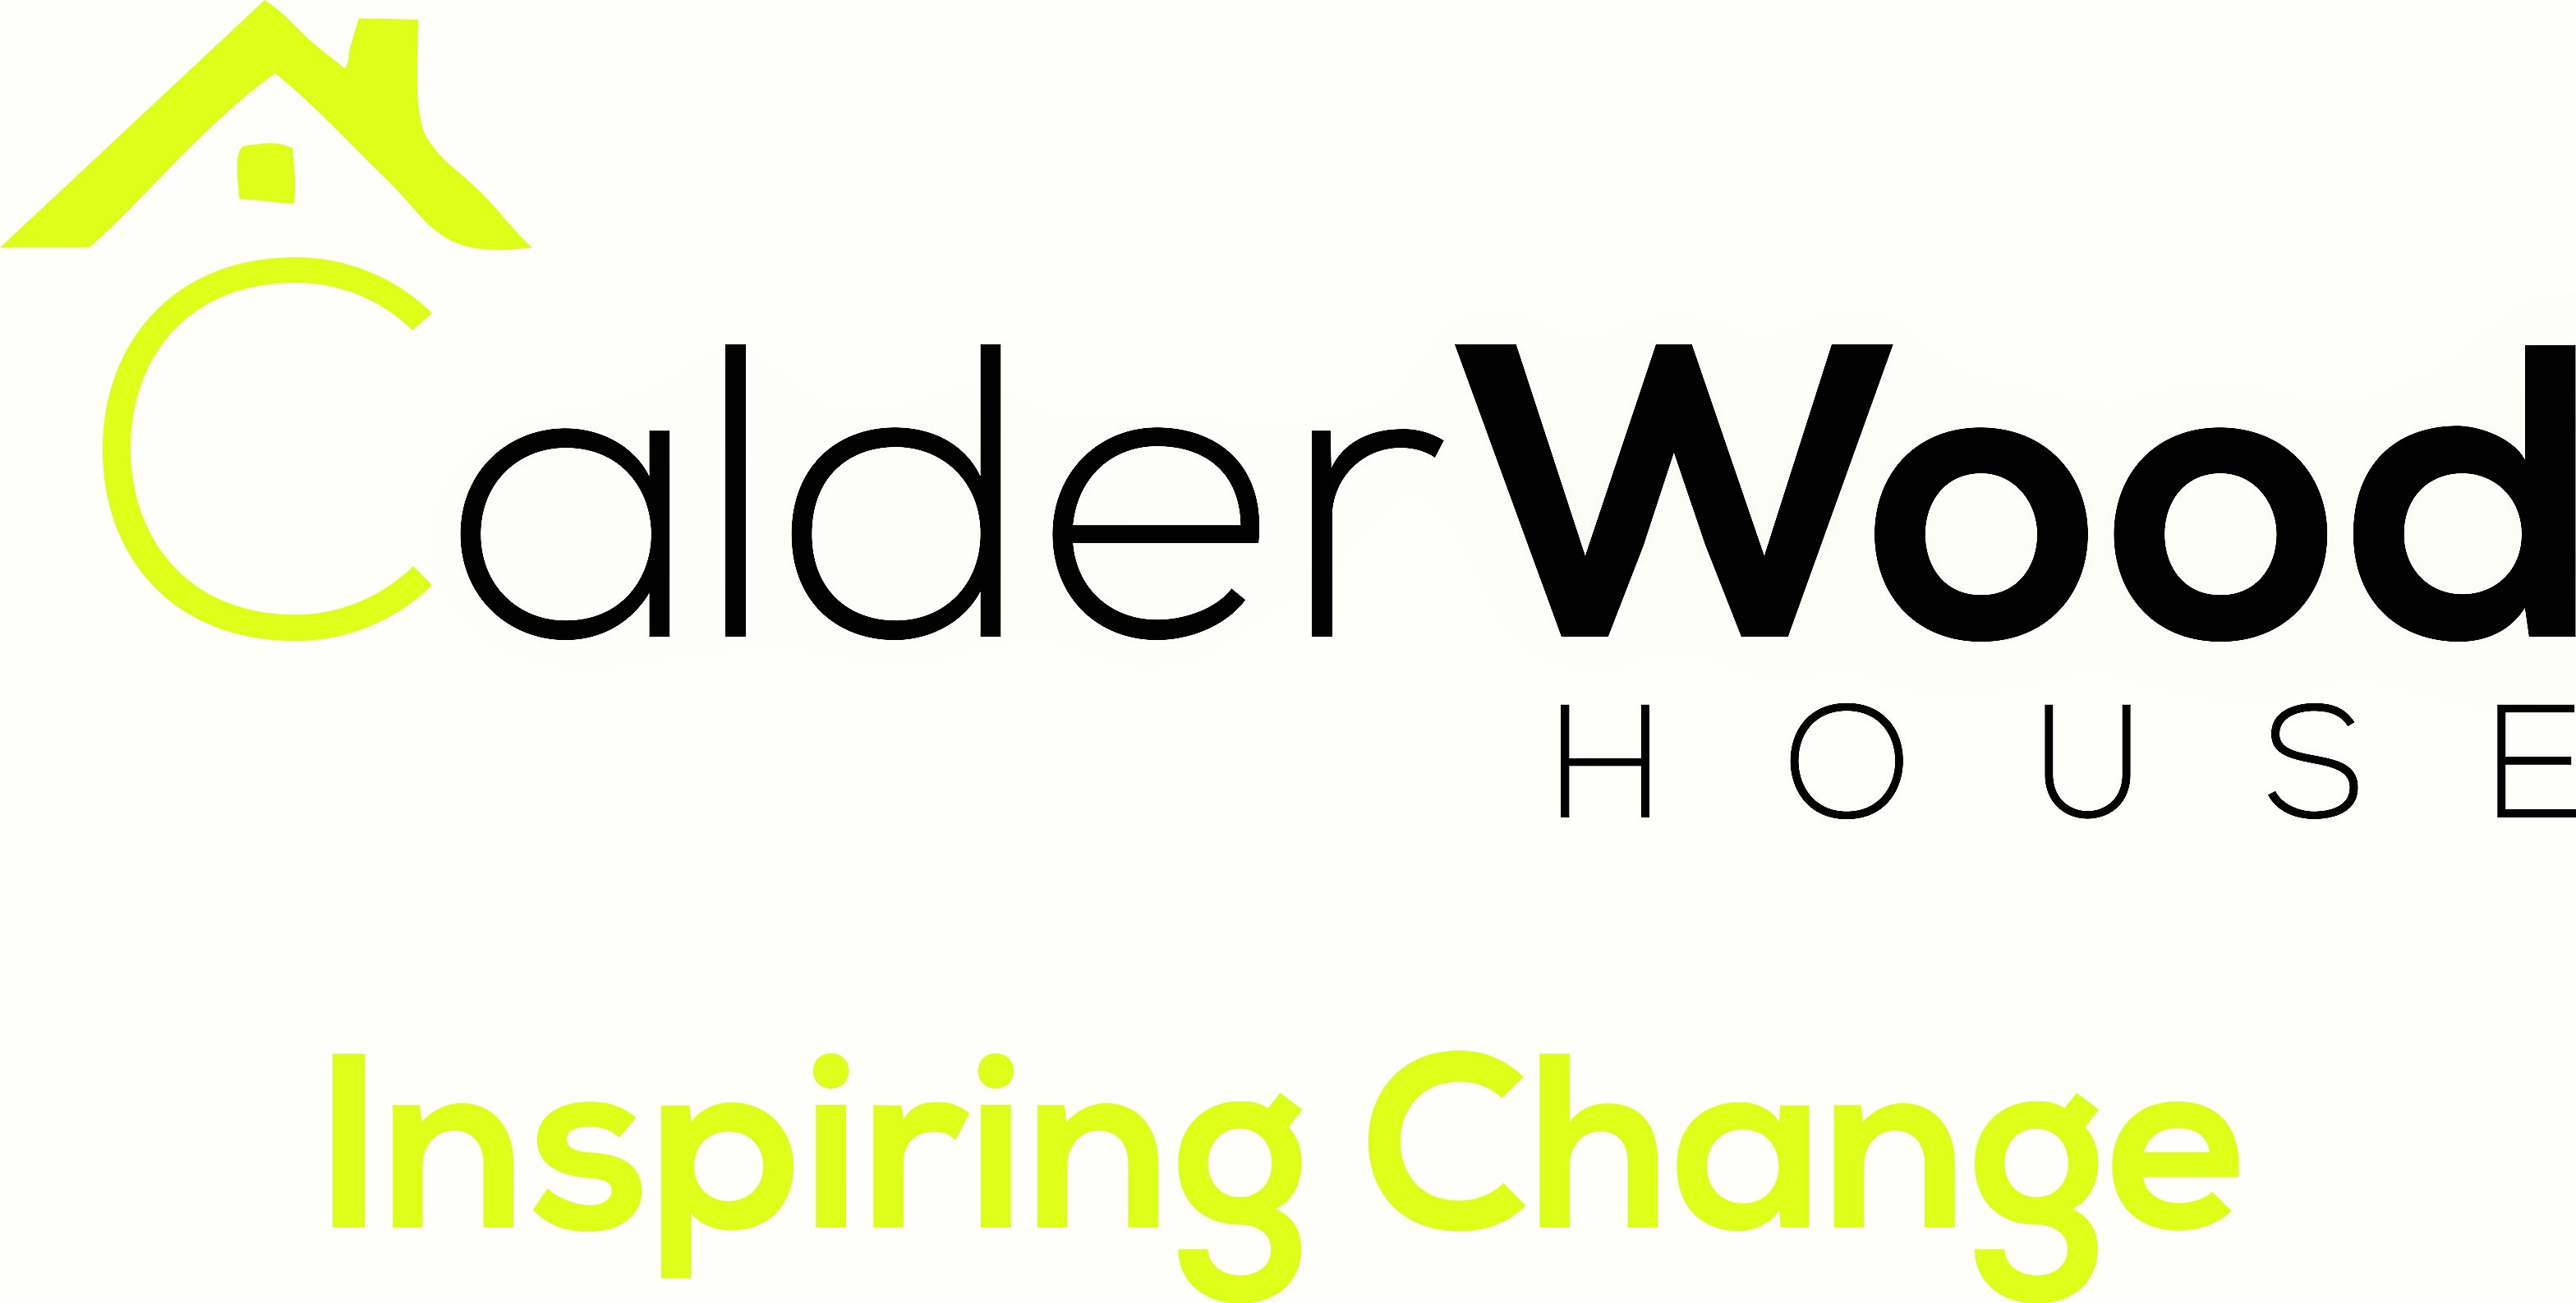 Calderwood House  (Time to Change) logo